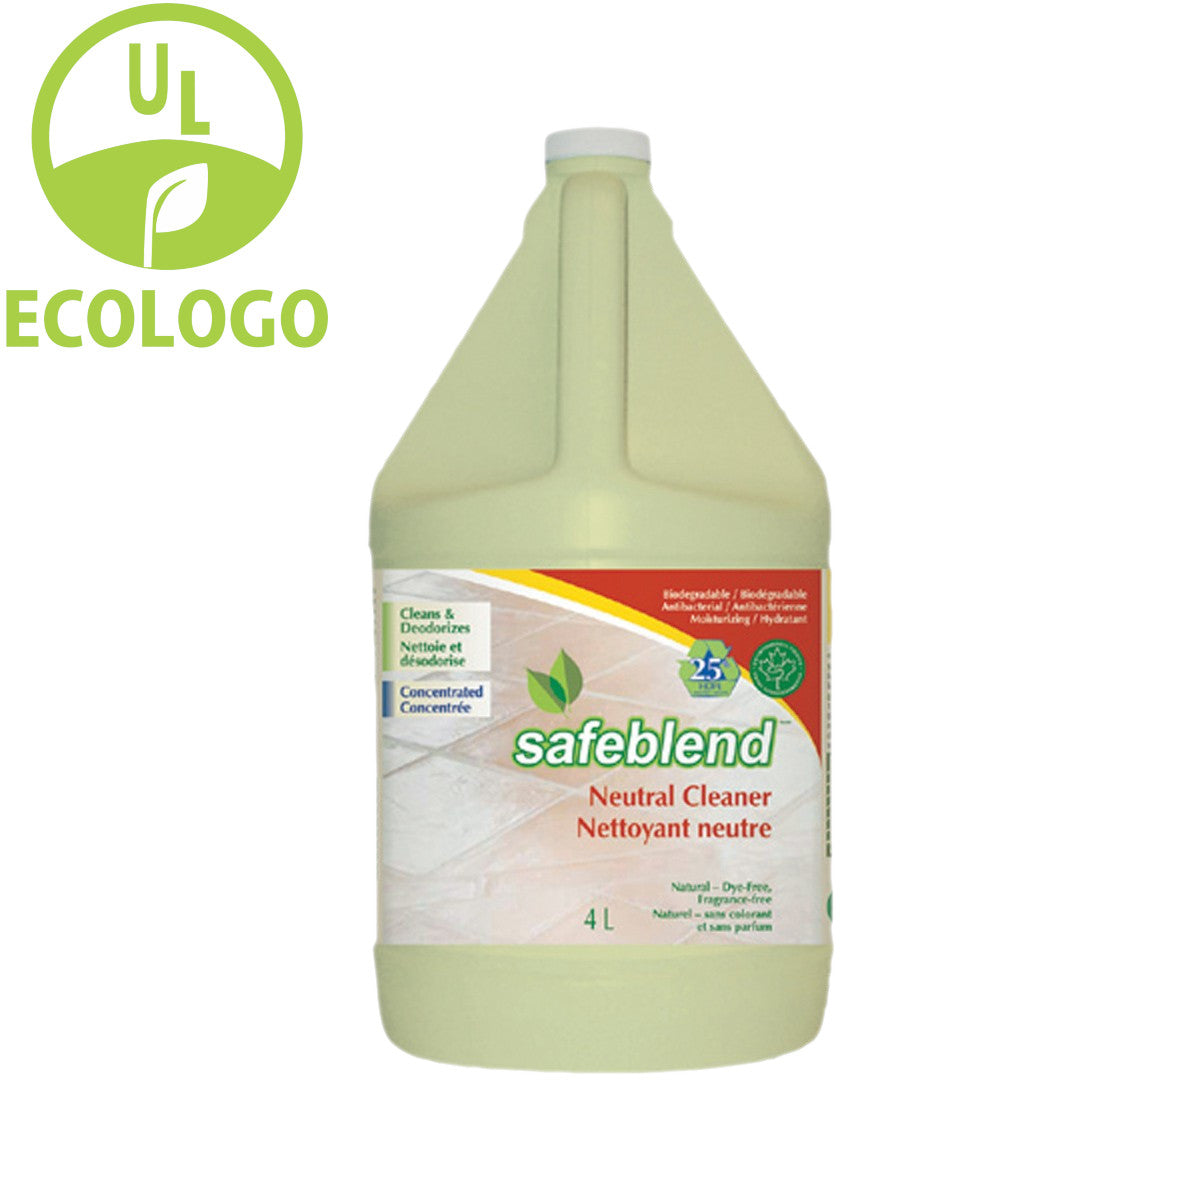 Safeblend EcoLogo Neutral Cleaner (Fragrance Free) - 4L - Super Vacs